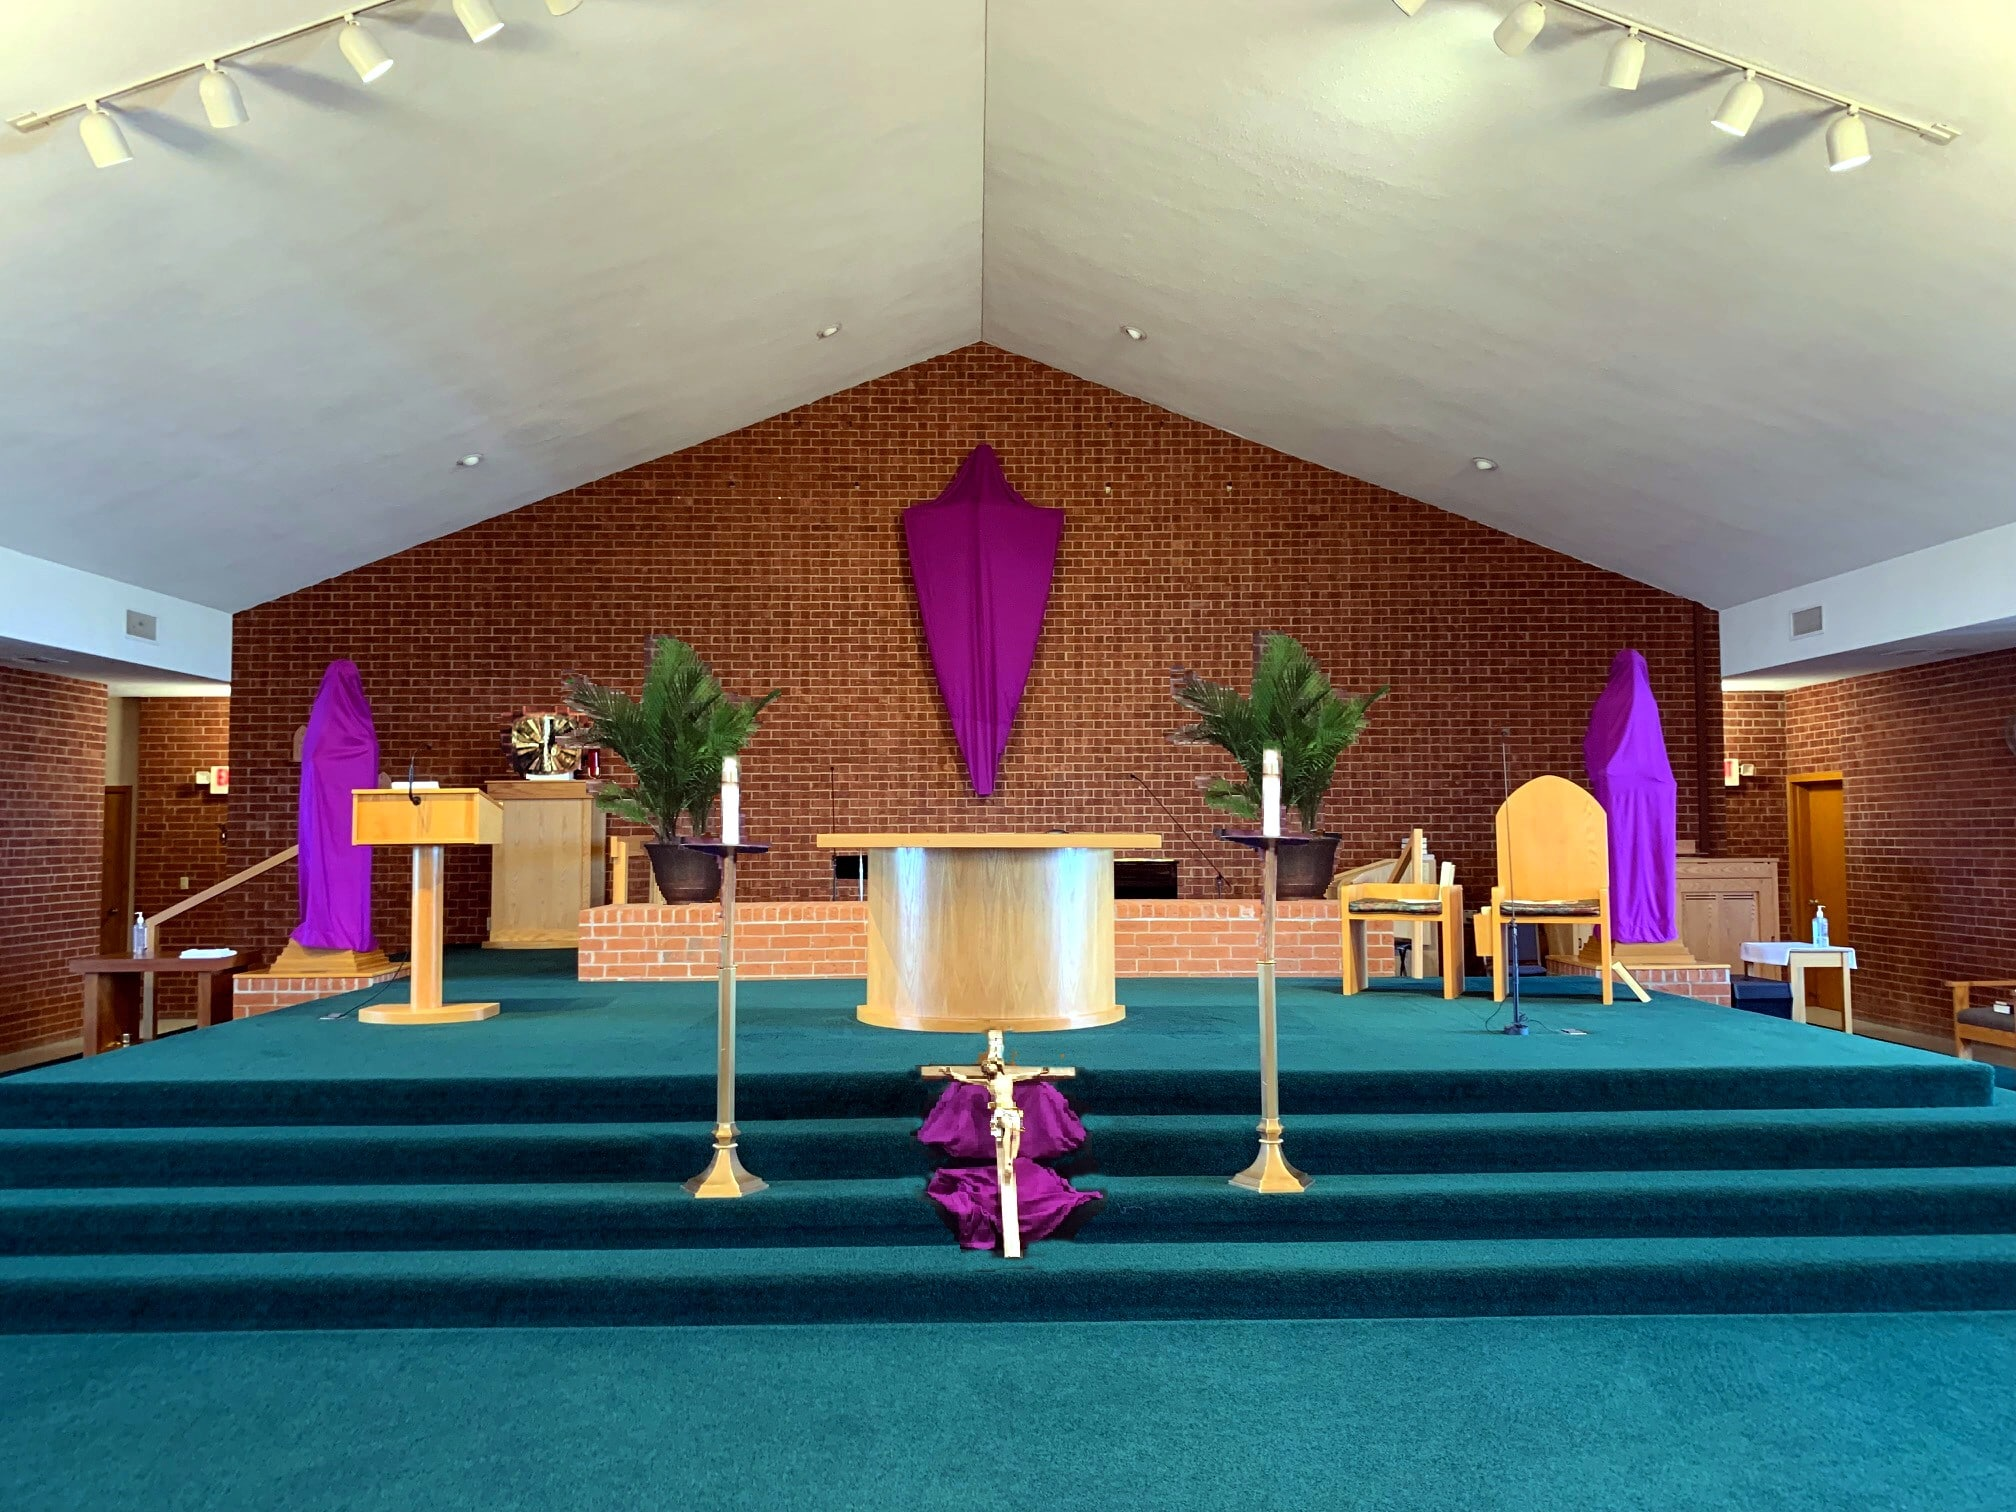 Church Sanctuary on Good Friday